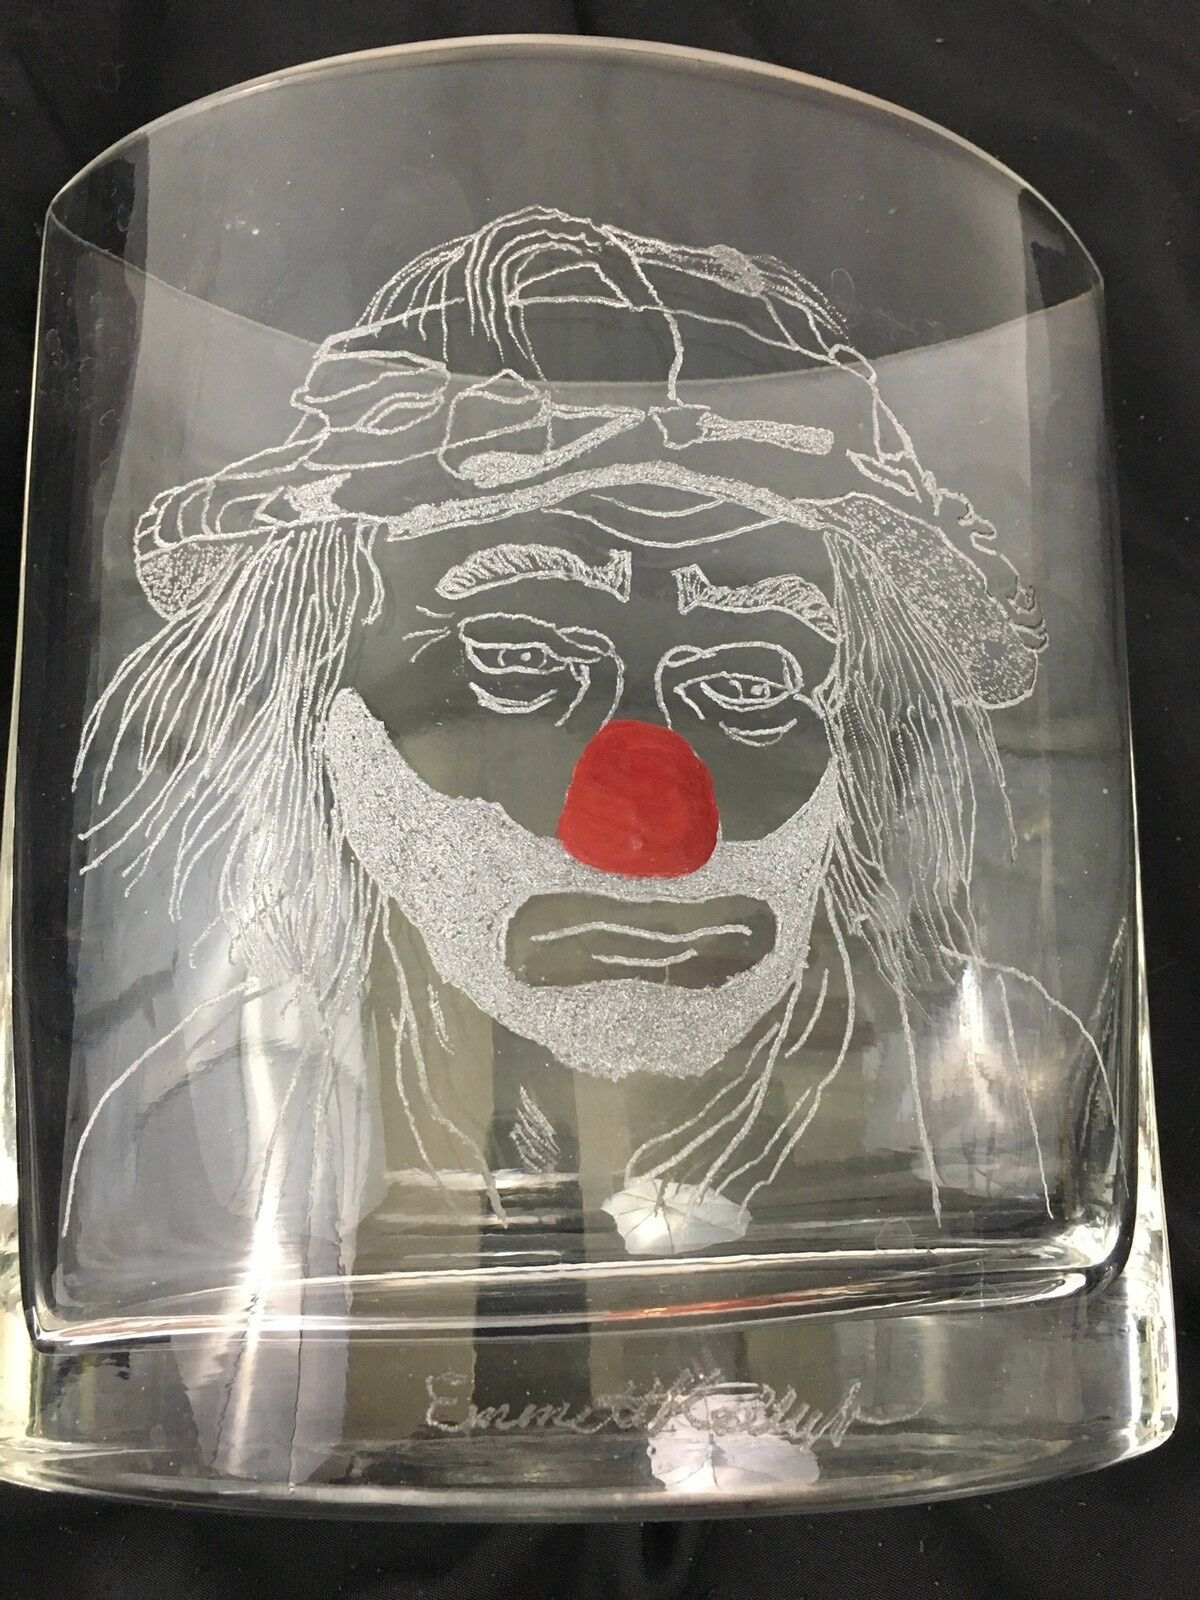 One Of A Kind Vases Hand Etched With Emmett Kelly Images Set Of 6 Без бренда